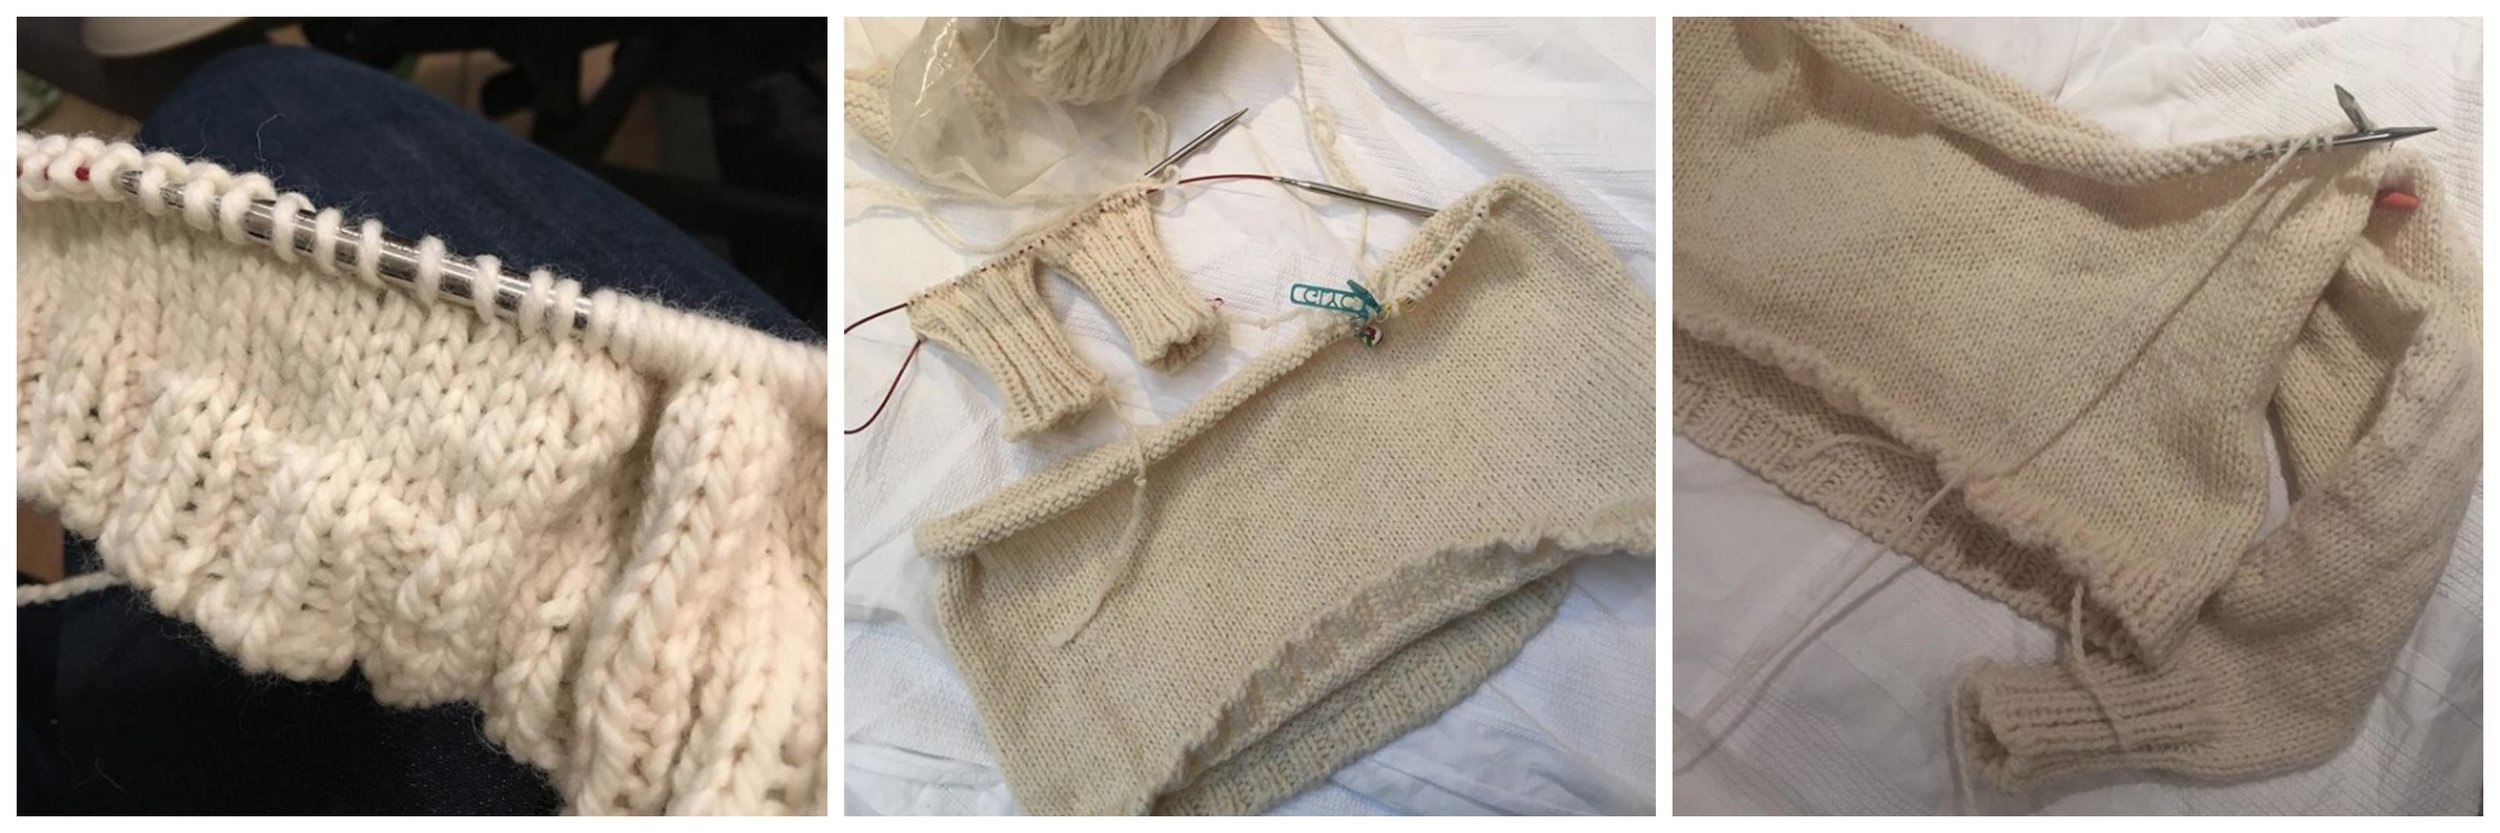 The benefits of bulky yarn: Rachel's Carbeth progress